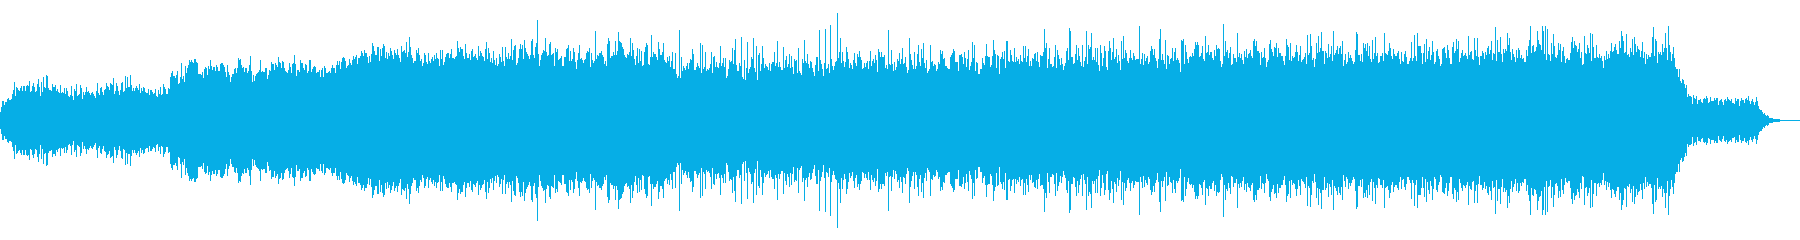 Movie music, majestic, for films-13's reproduced waveform